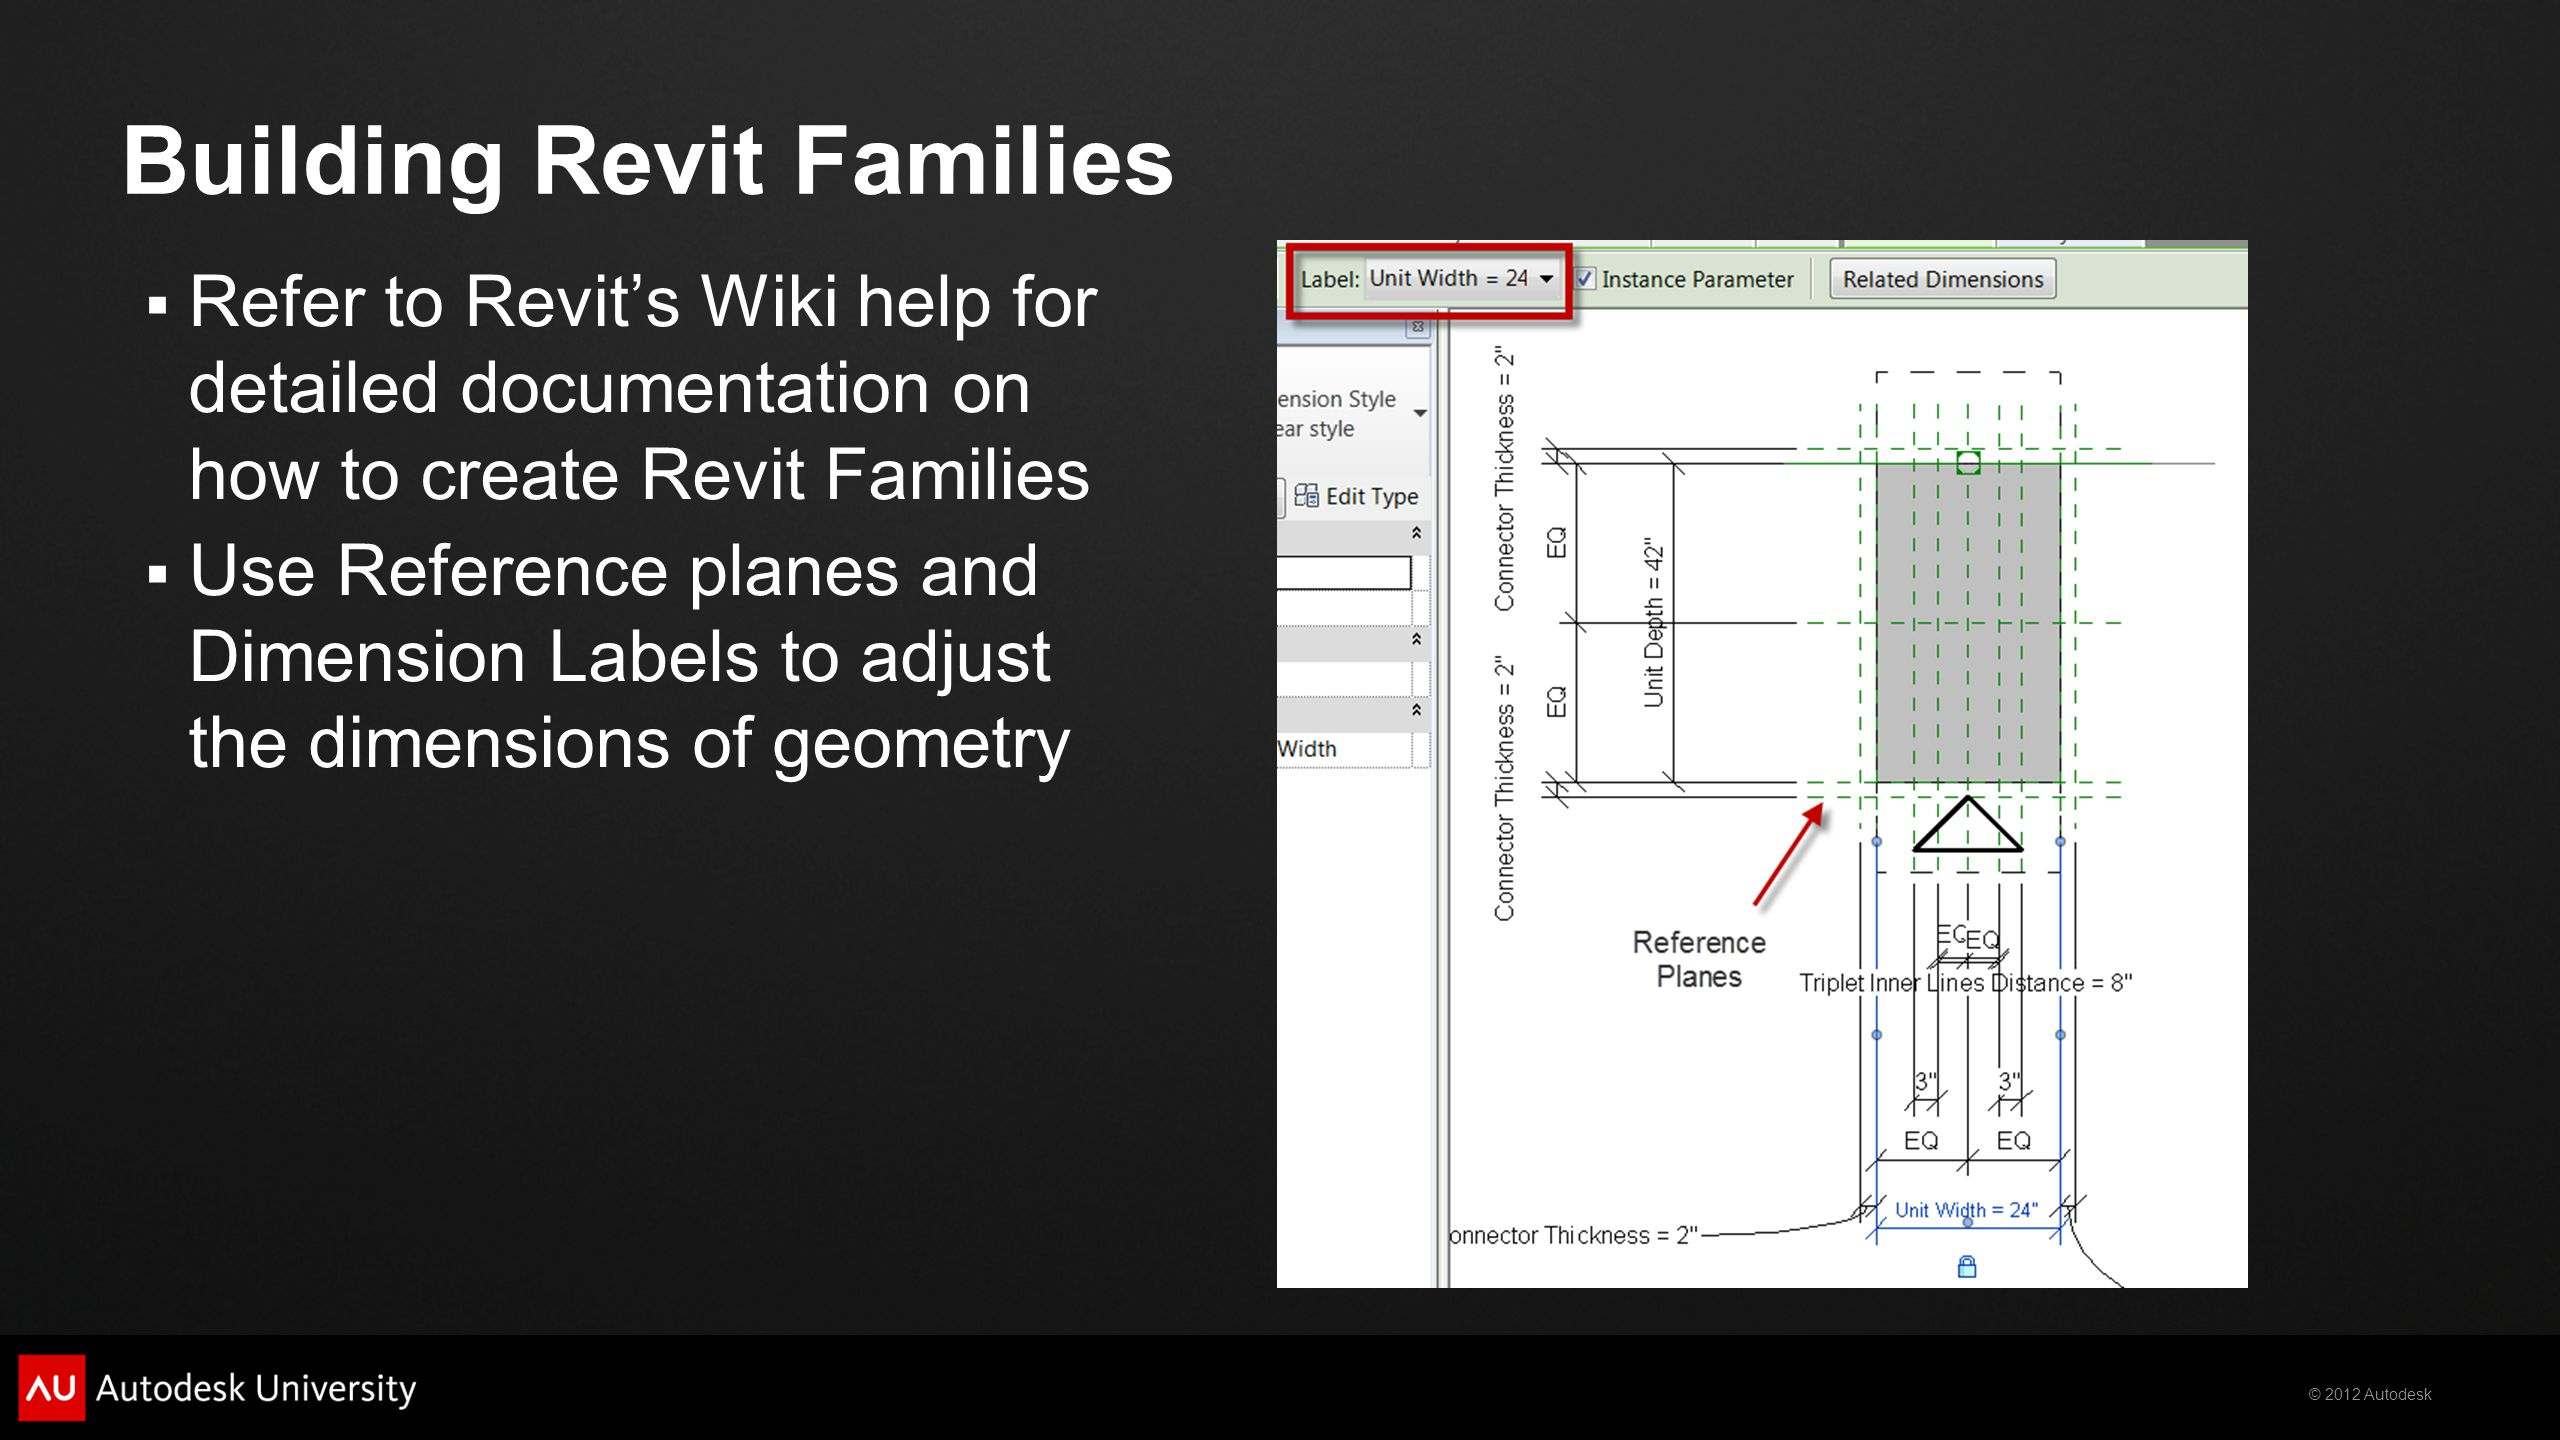 Building Revit Families